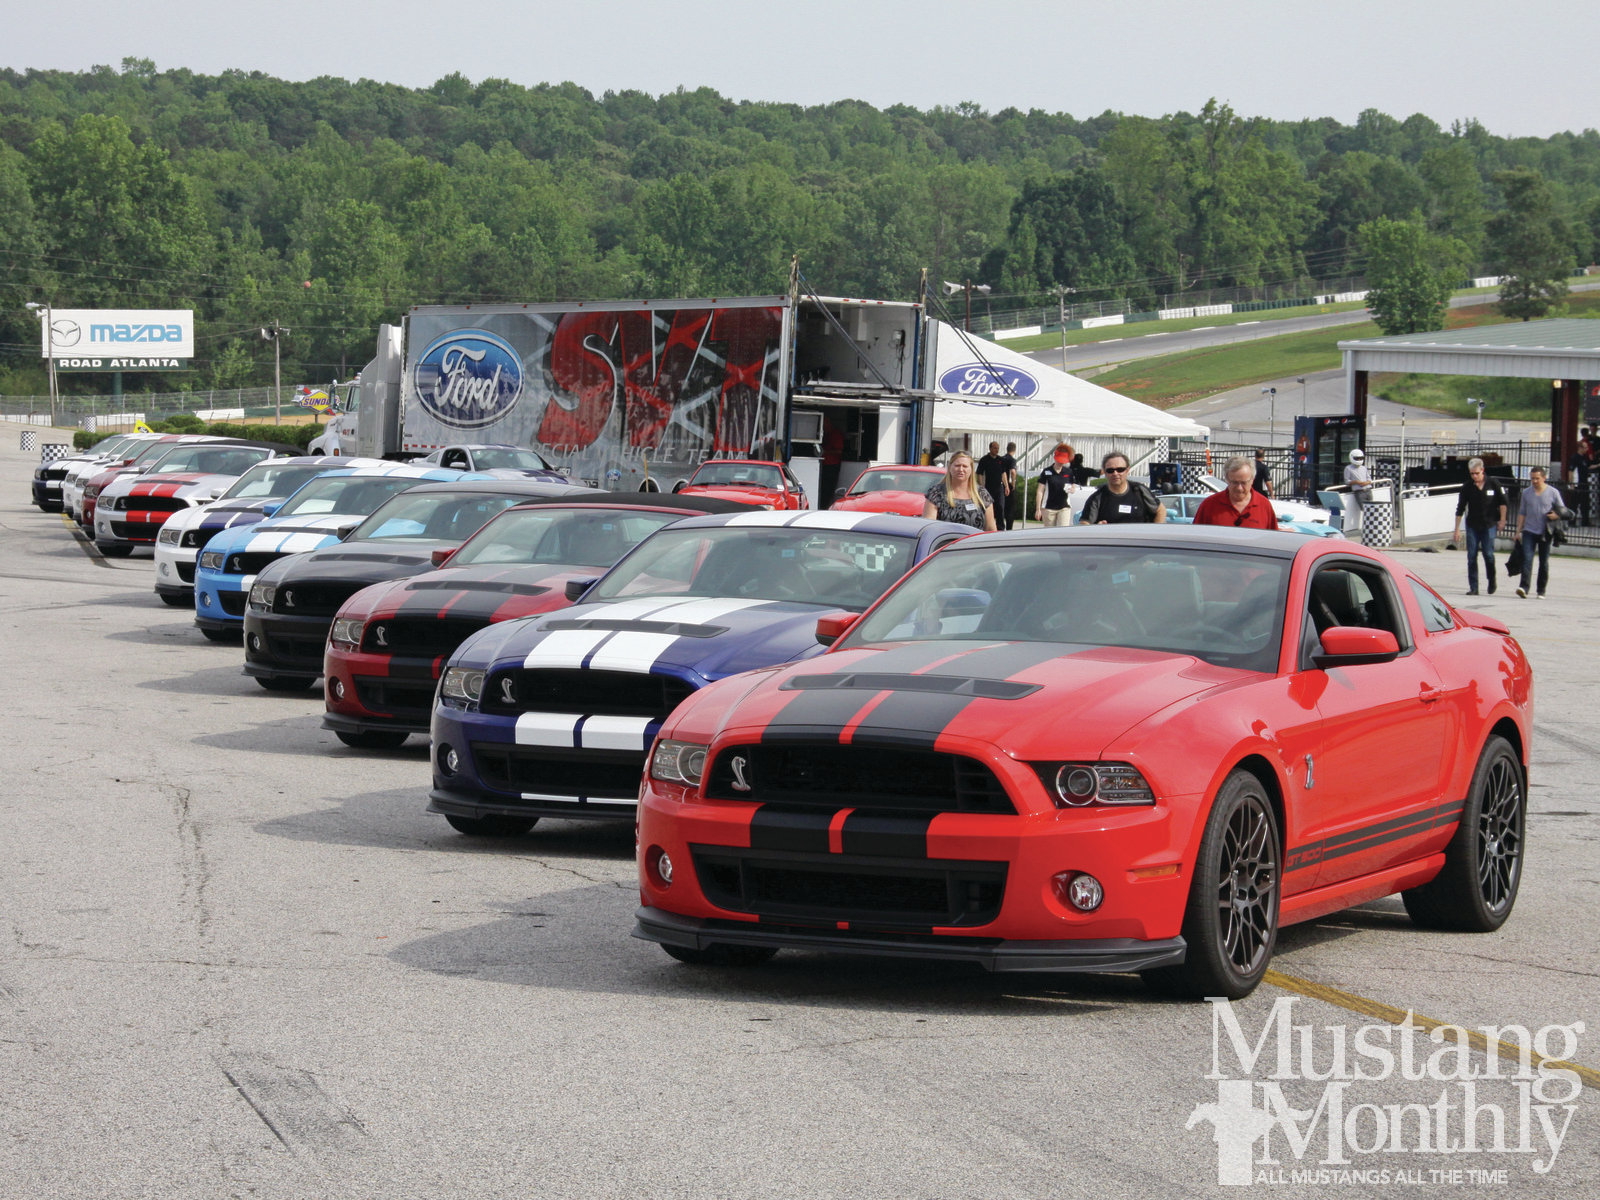 2013 Ford Mustang Shelby GT500 photo - 1